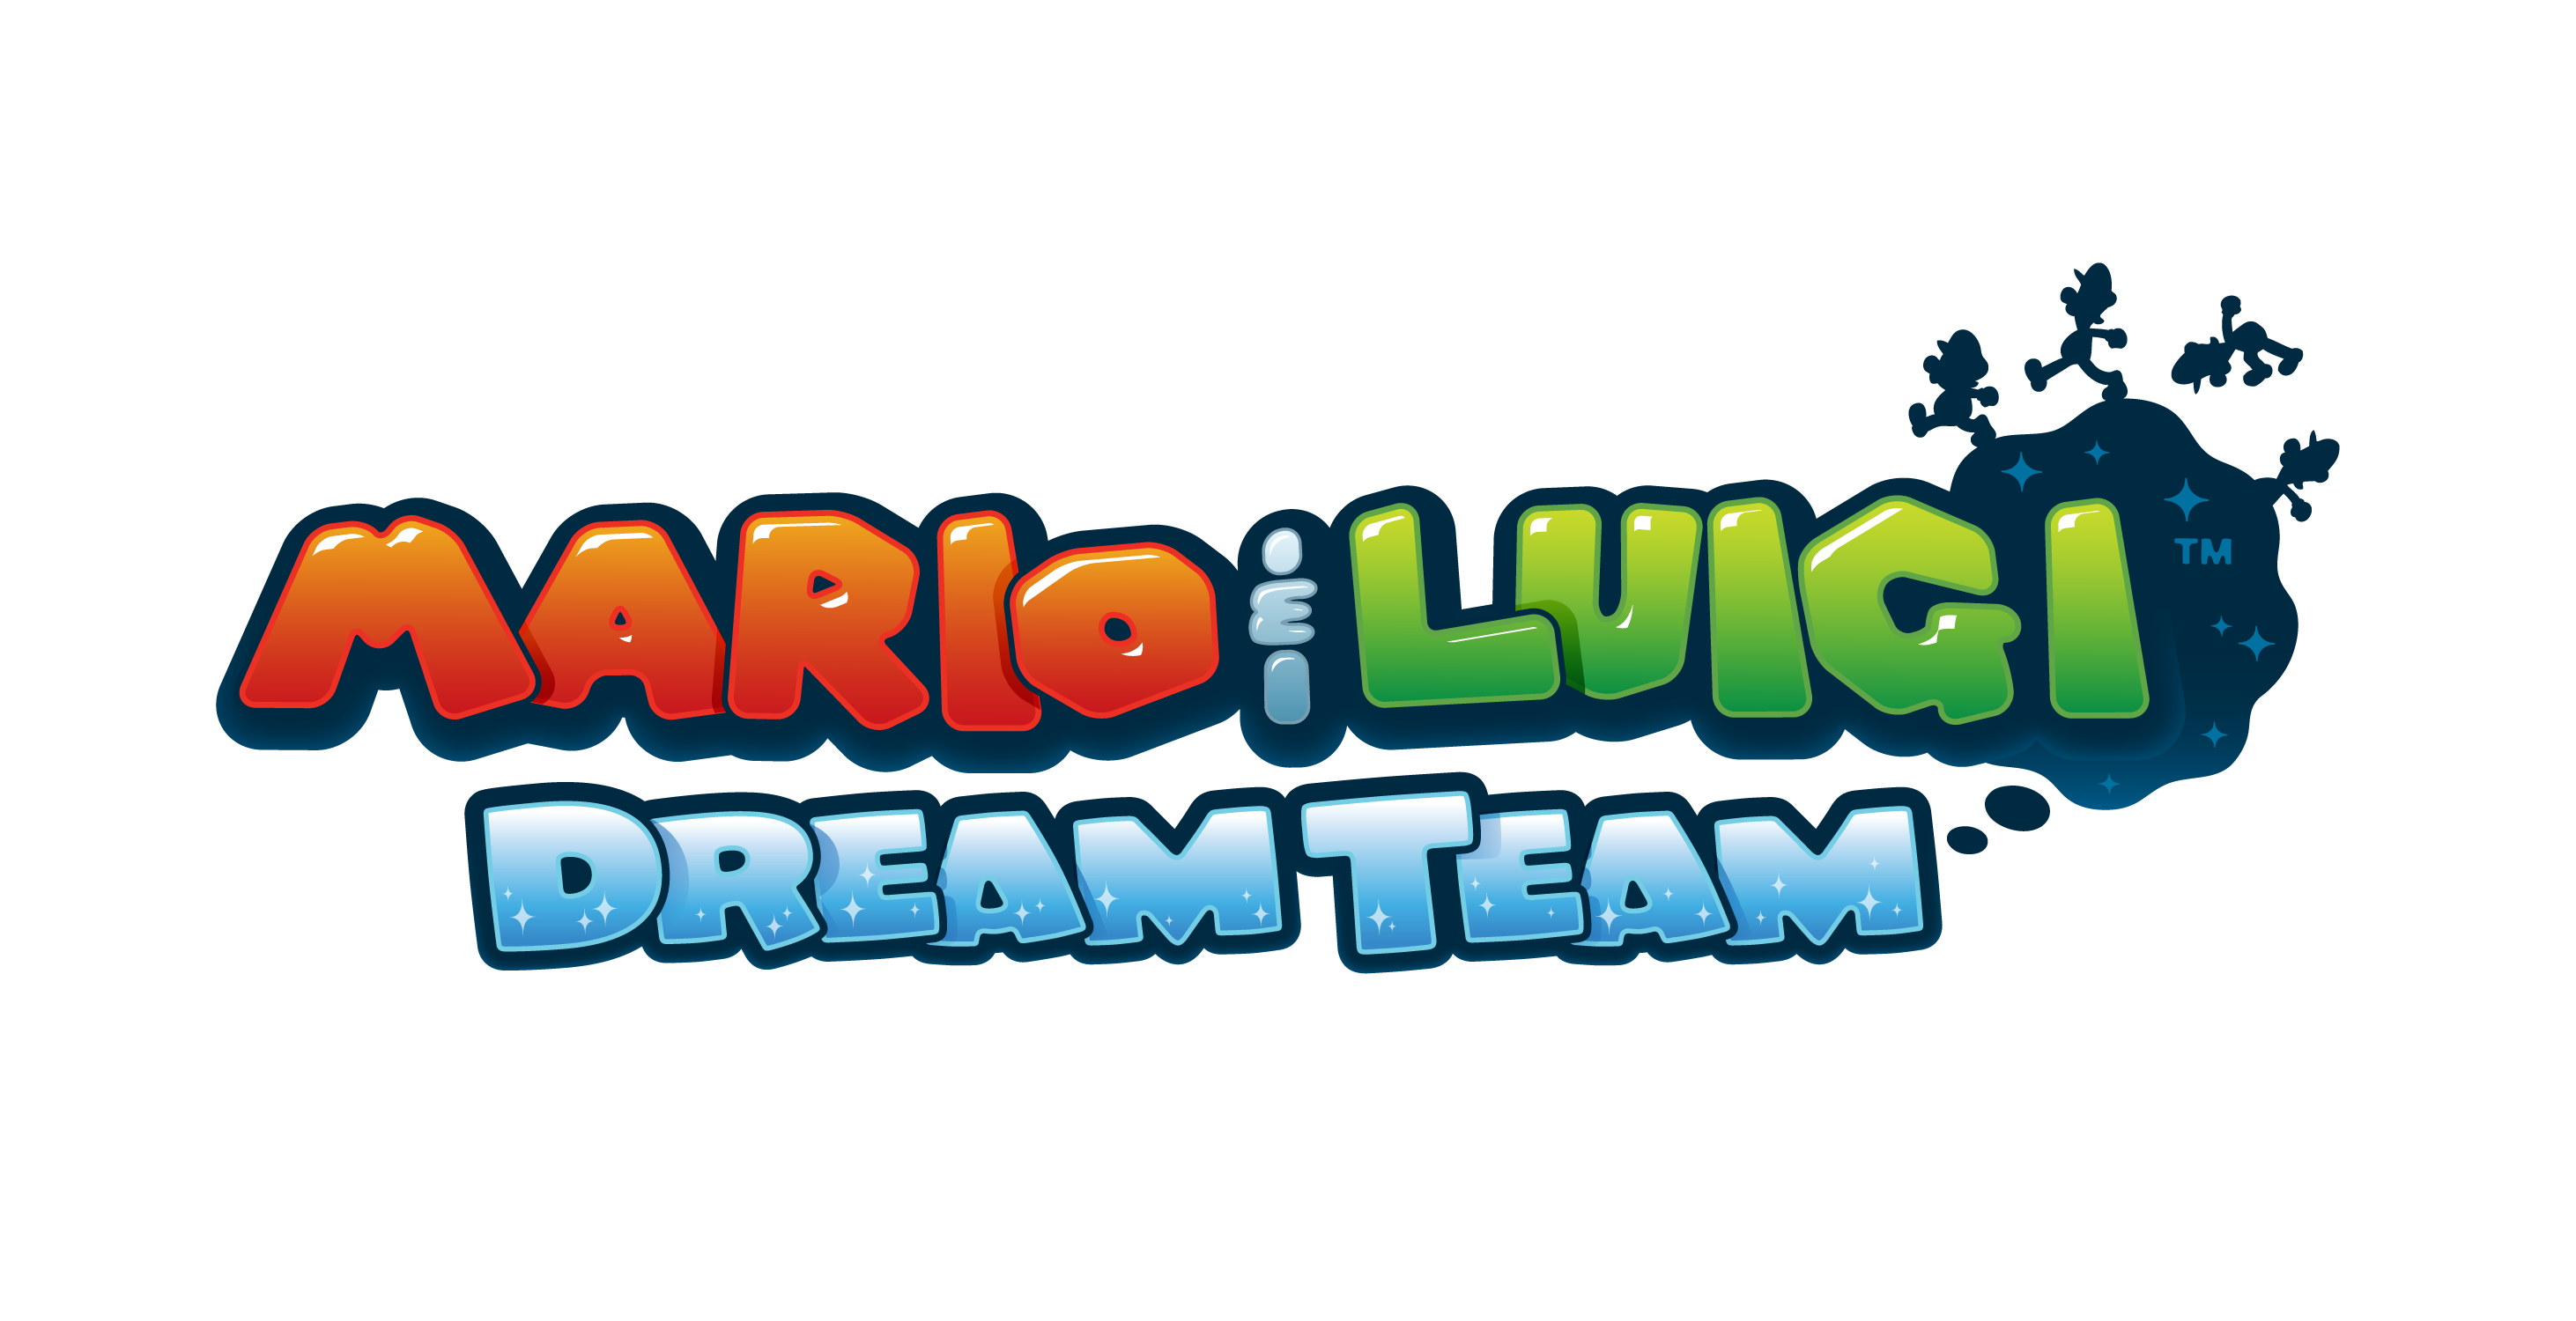 Mario & Luigi: Dream Team Teaser Trailer